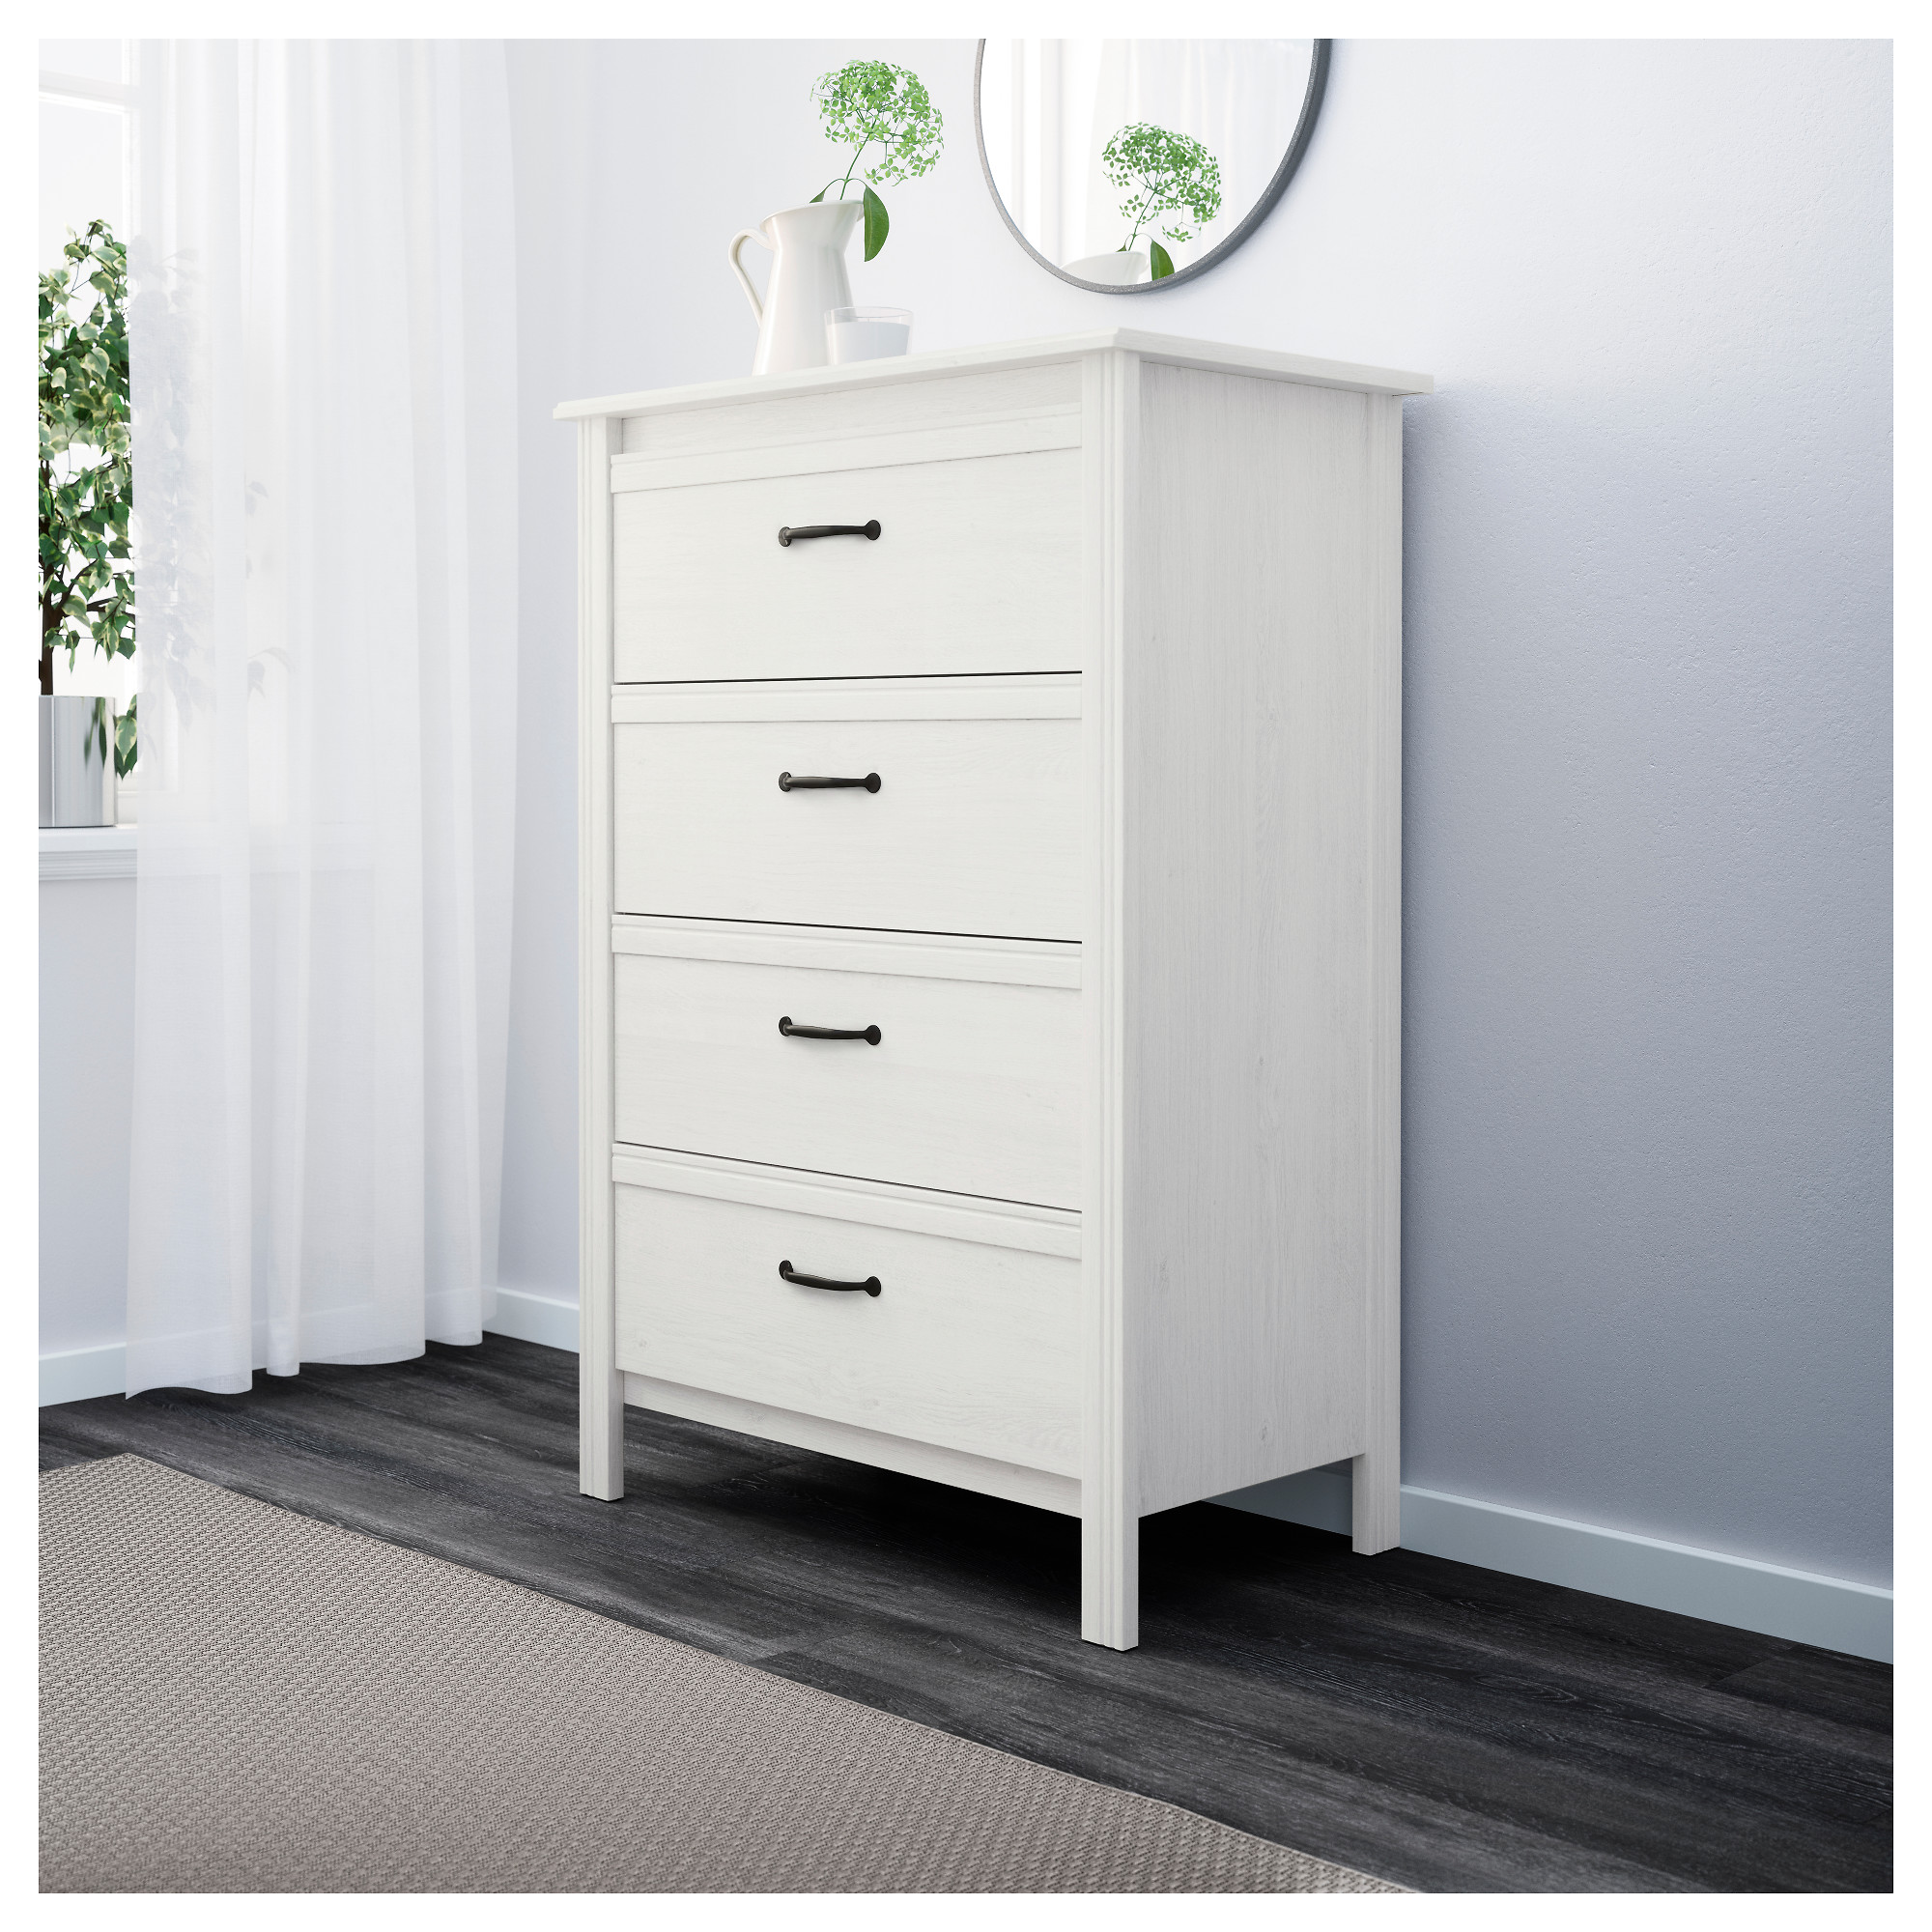 BRUSALI Chest Of Drawers White IKEA - Ikea chest of drawers